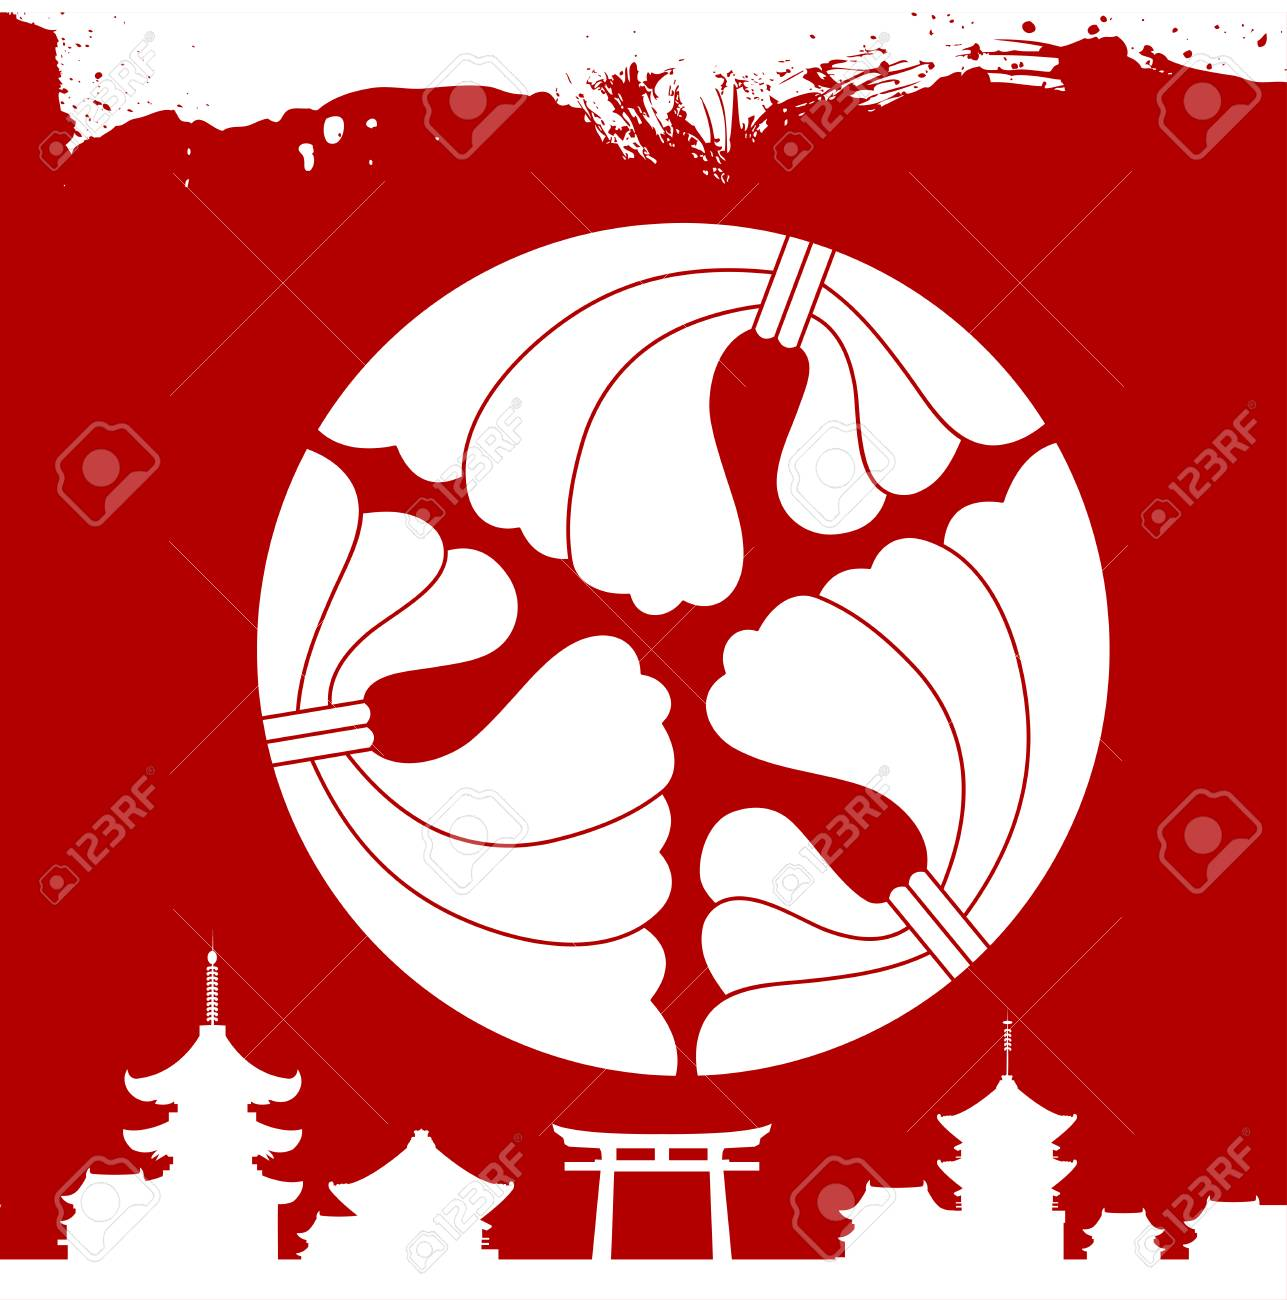 A Japanese Culture Symbolic Vector Ornaments Royalty Free Cliparts